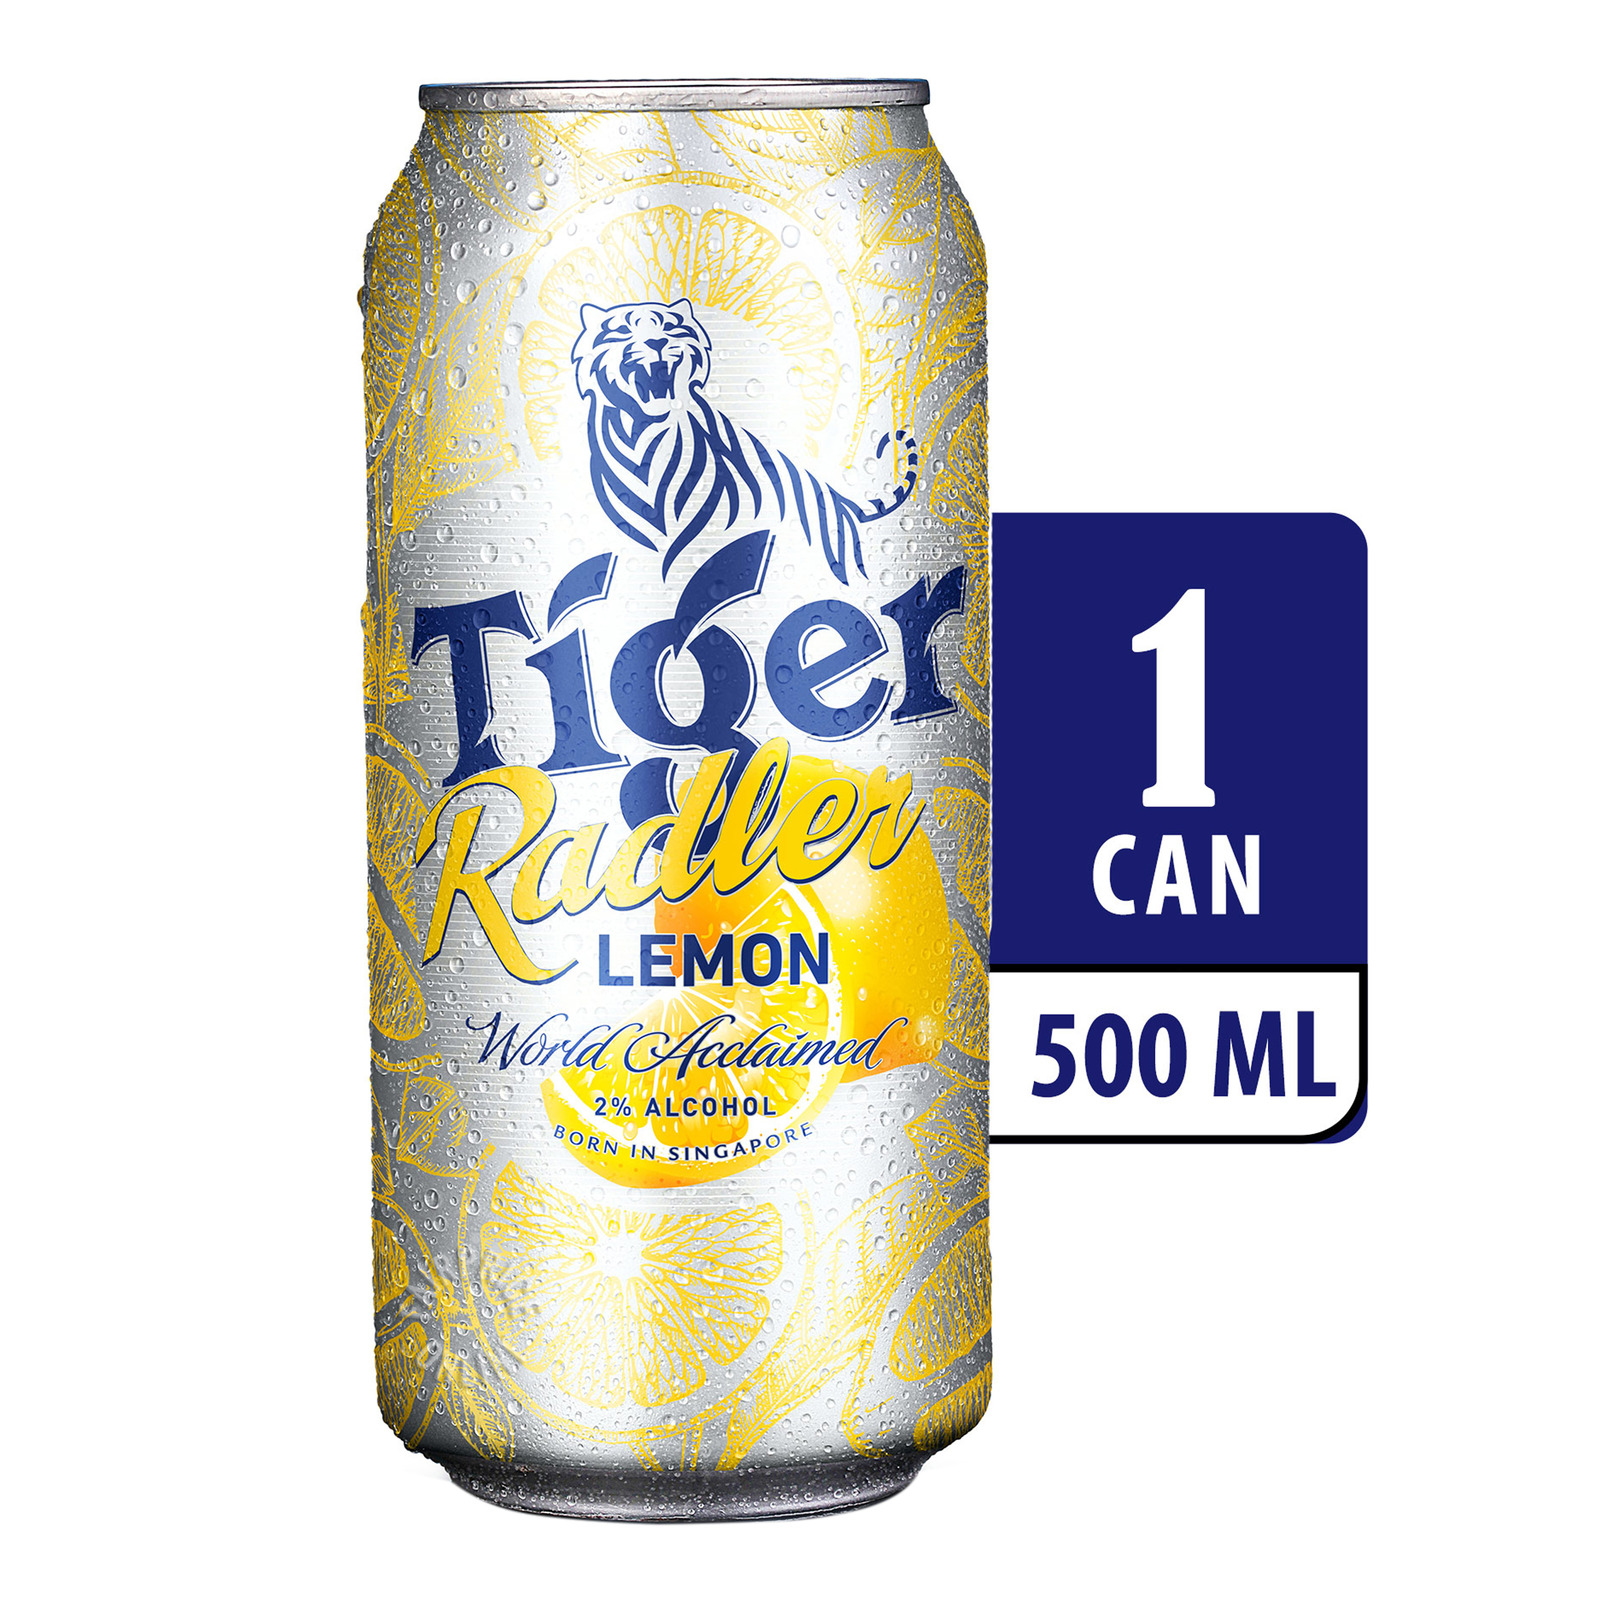 Tiger Radler Can Beer - Lemon